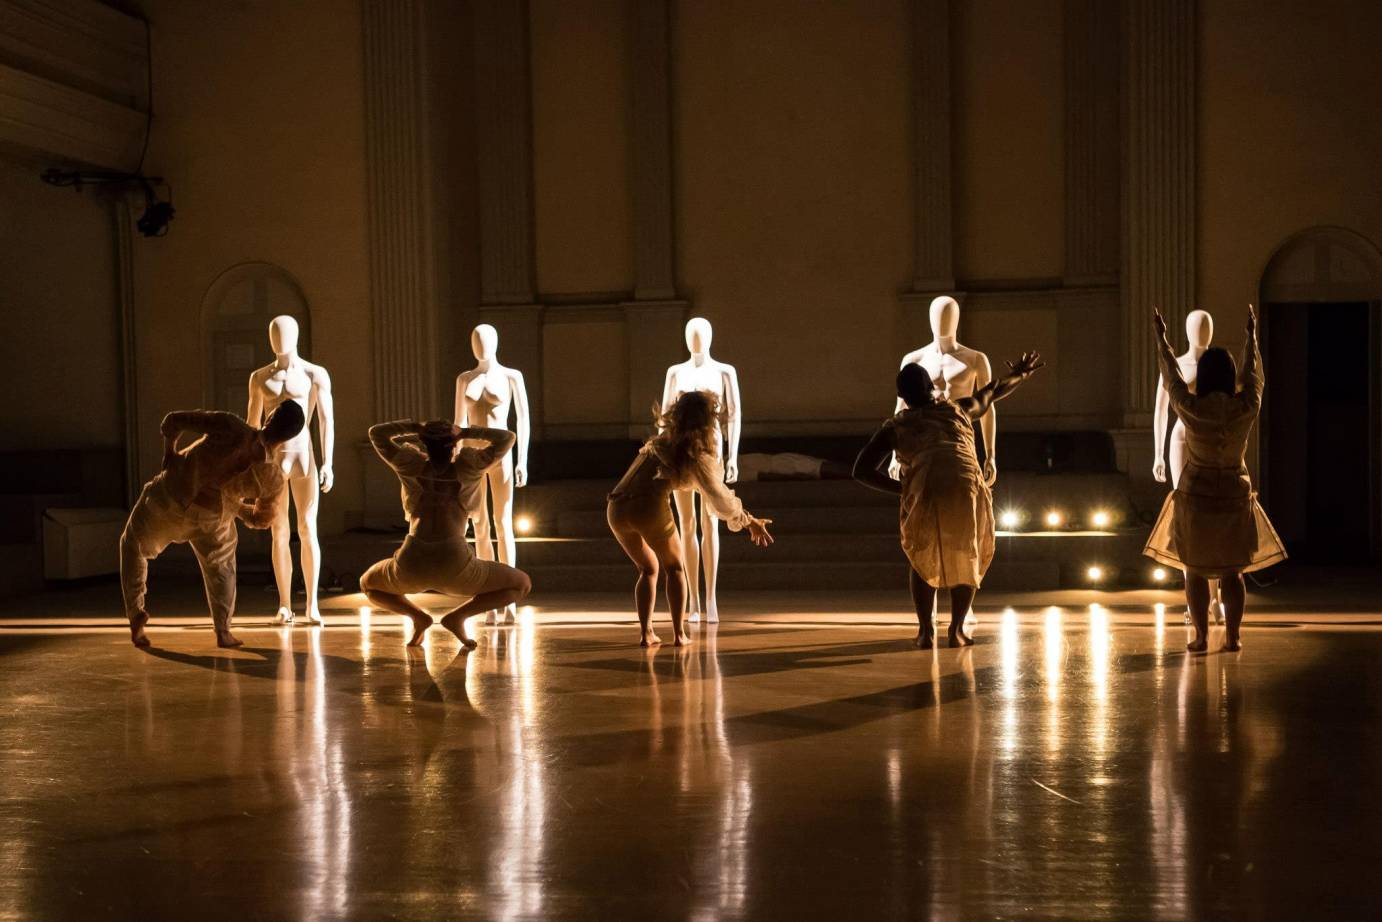 Each dancer gestures to their mannequin counterpart; their backs are towards the audience